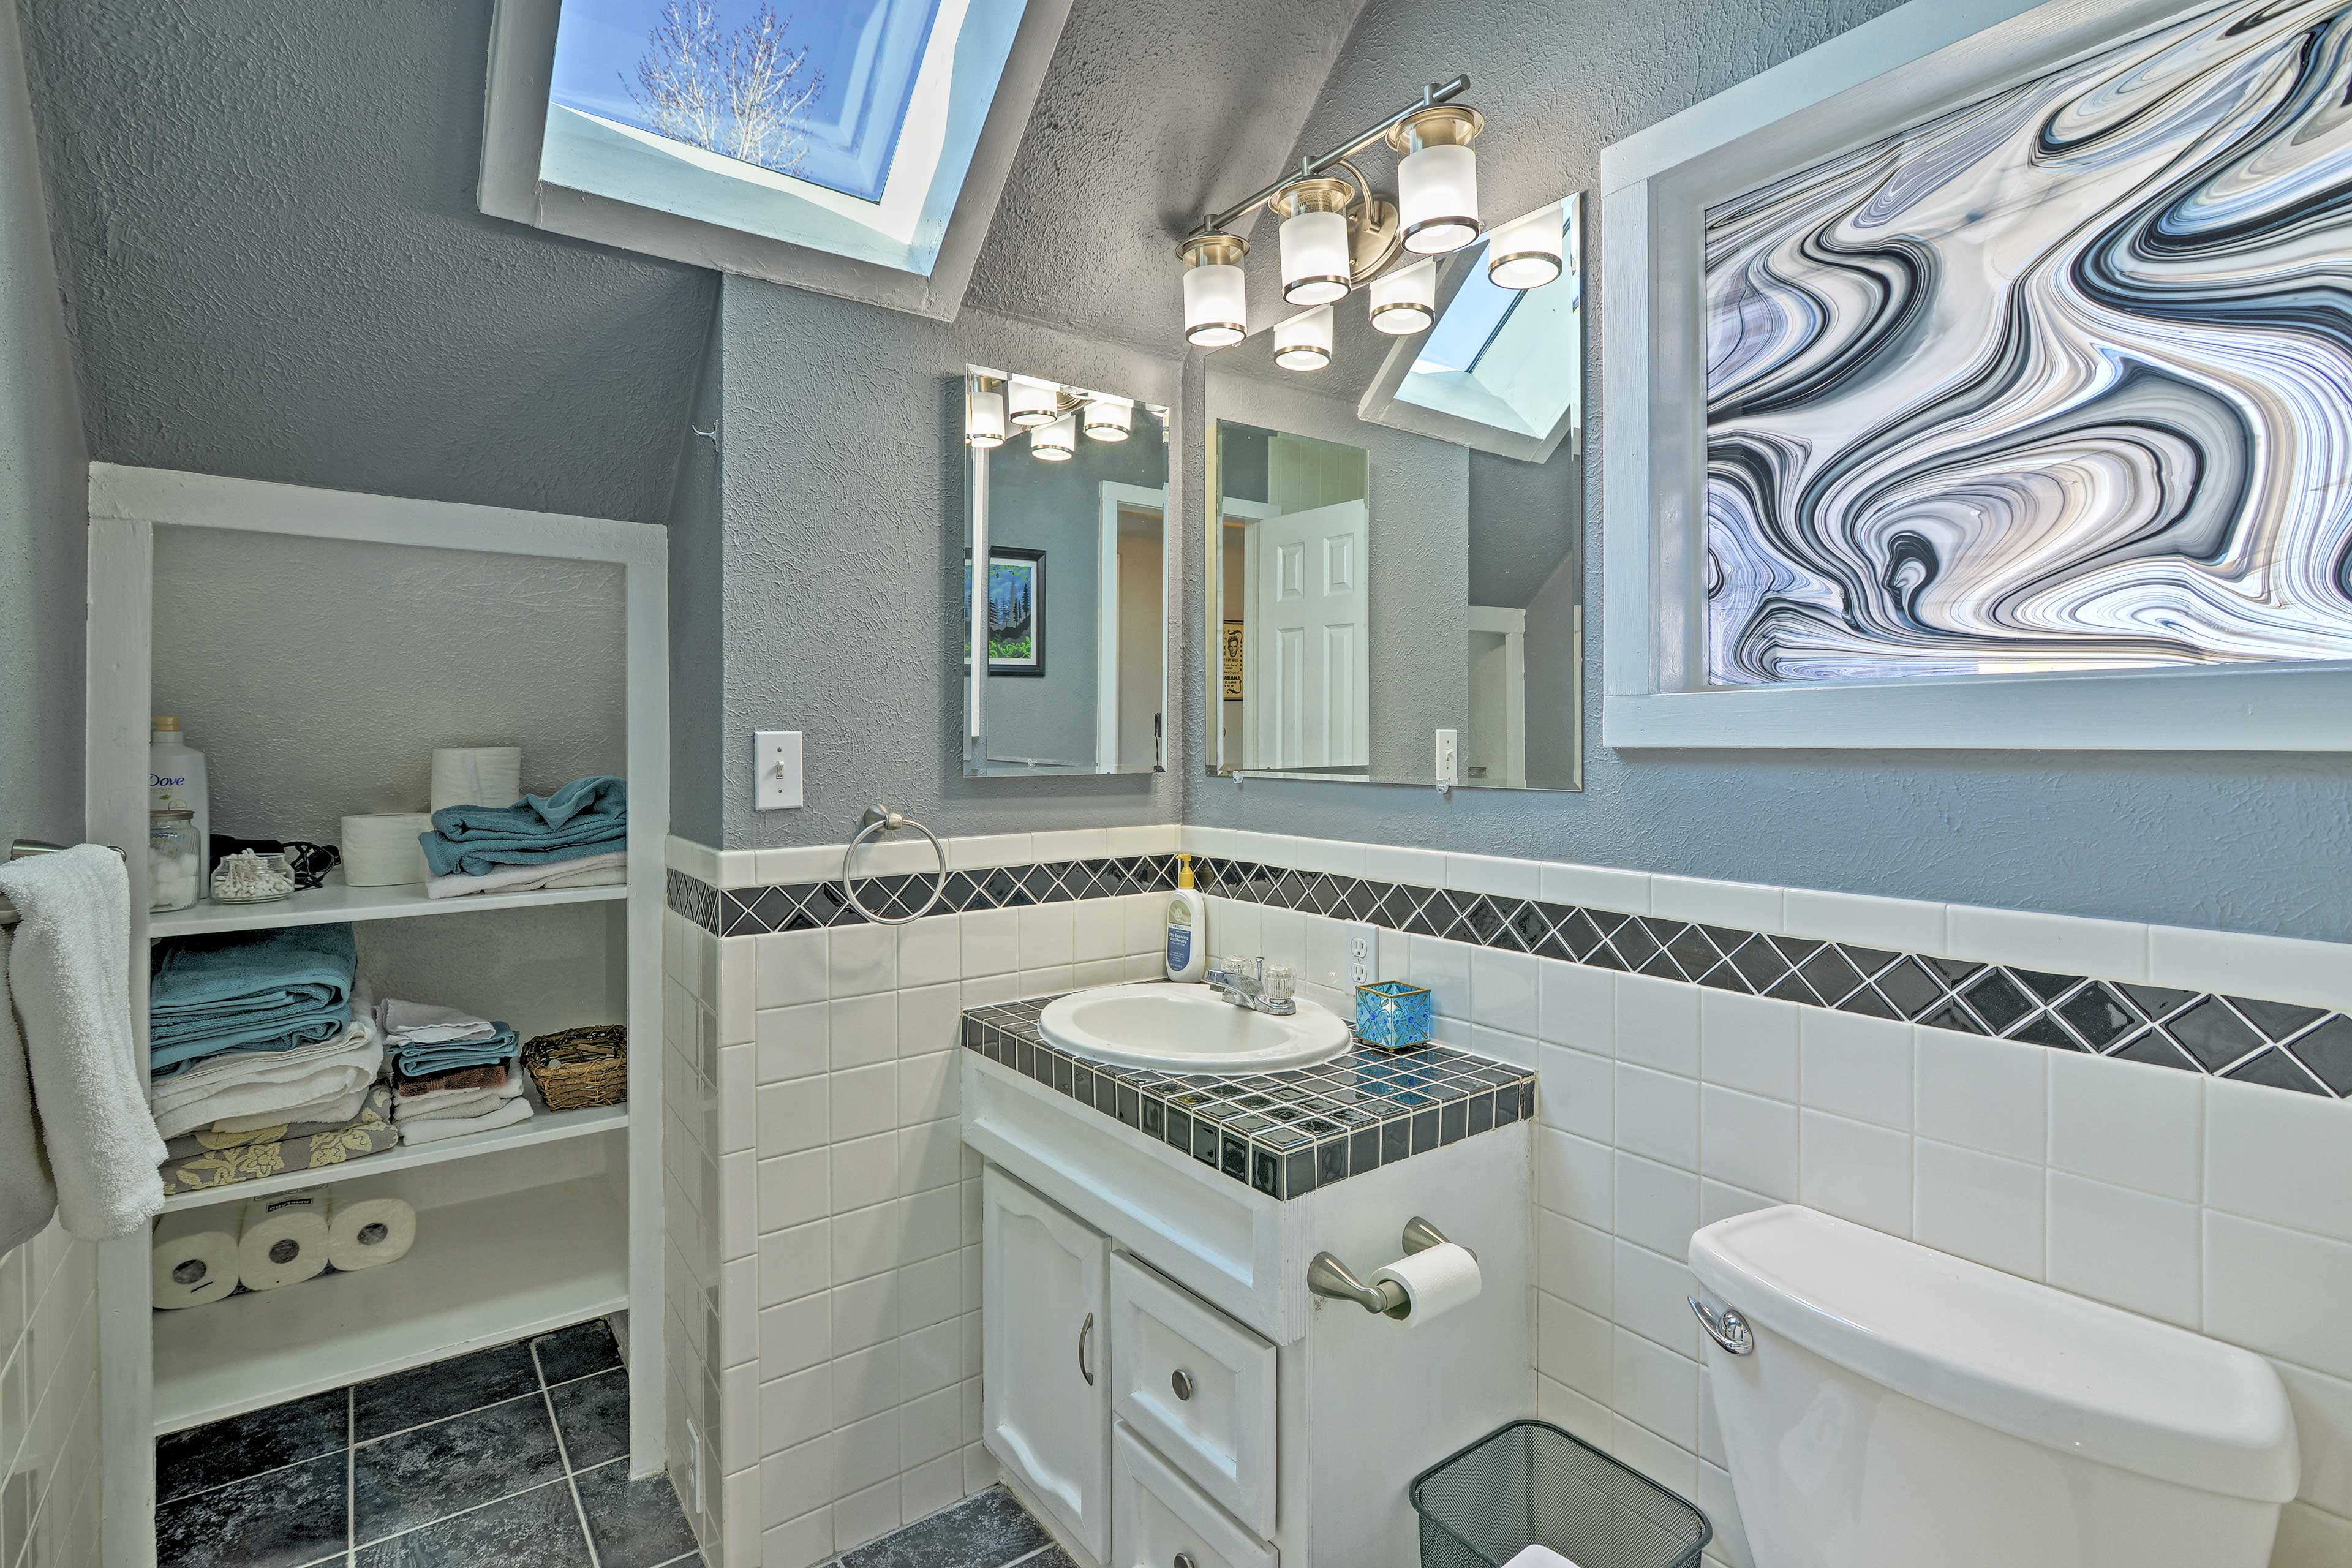 A full bathroom is available between both the upstairs bedrooms.